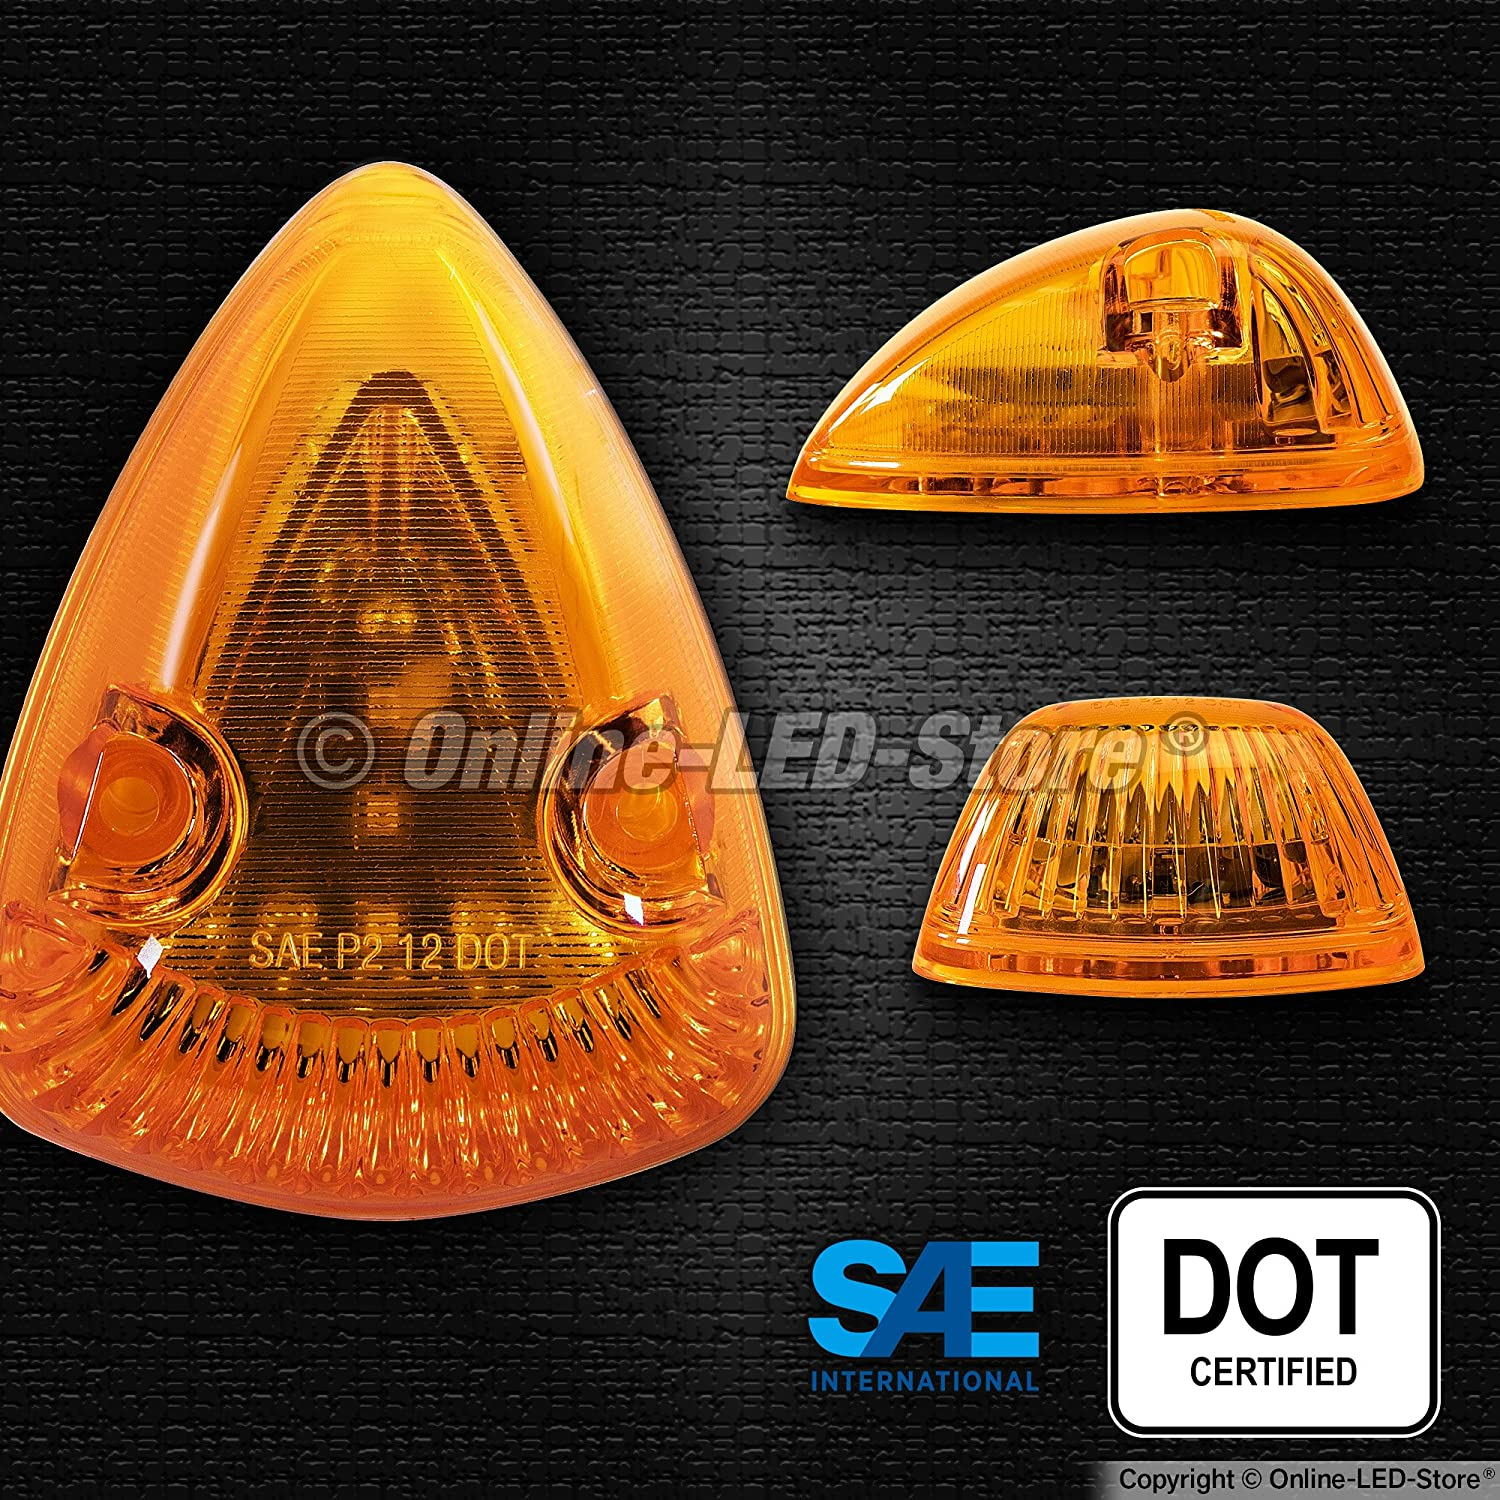 1pc Amber LED Cab Lights DOT//SAE Certified Waterproof LED Roof Top Marker Running Lights - Heavy Duty Universal Fit or Replacement for 94-98 Dodge Ram 12 LED